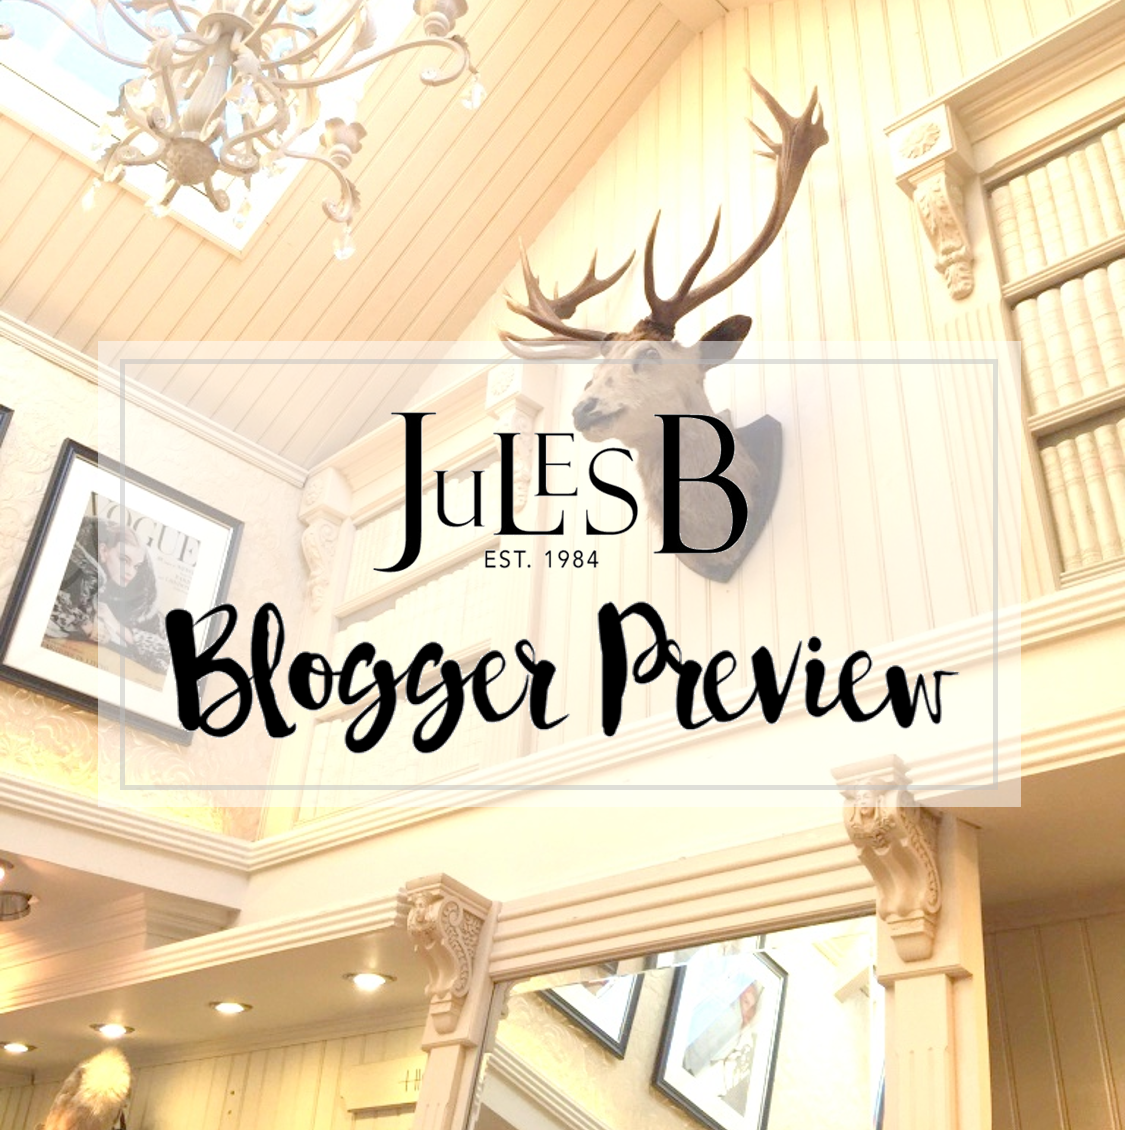 Jules B Blogger Preview Event clothes and stuff